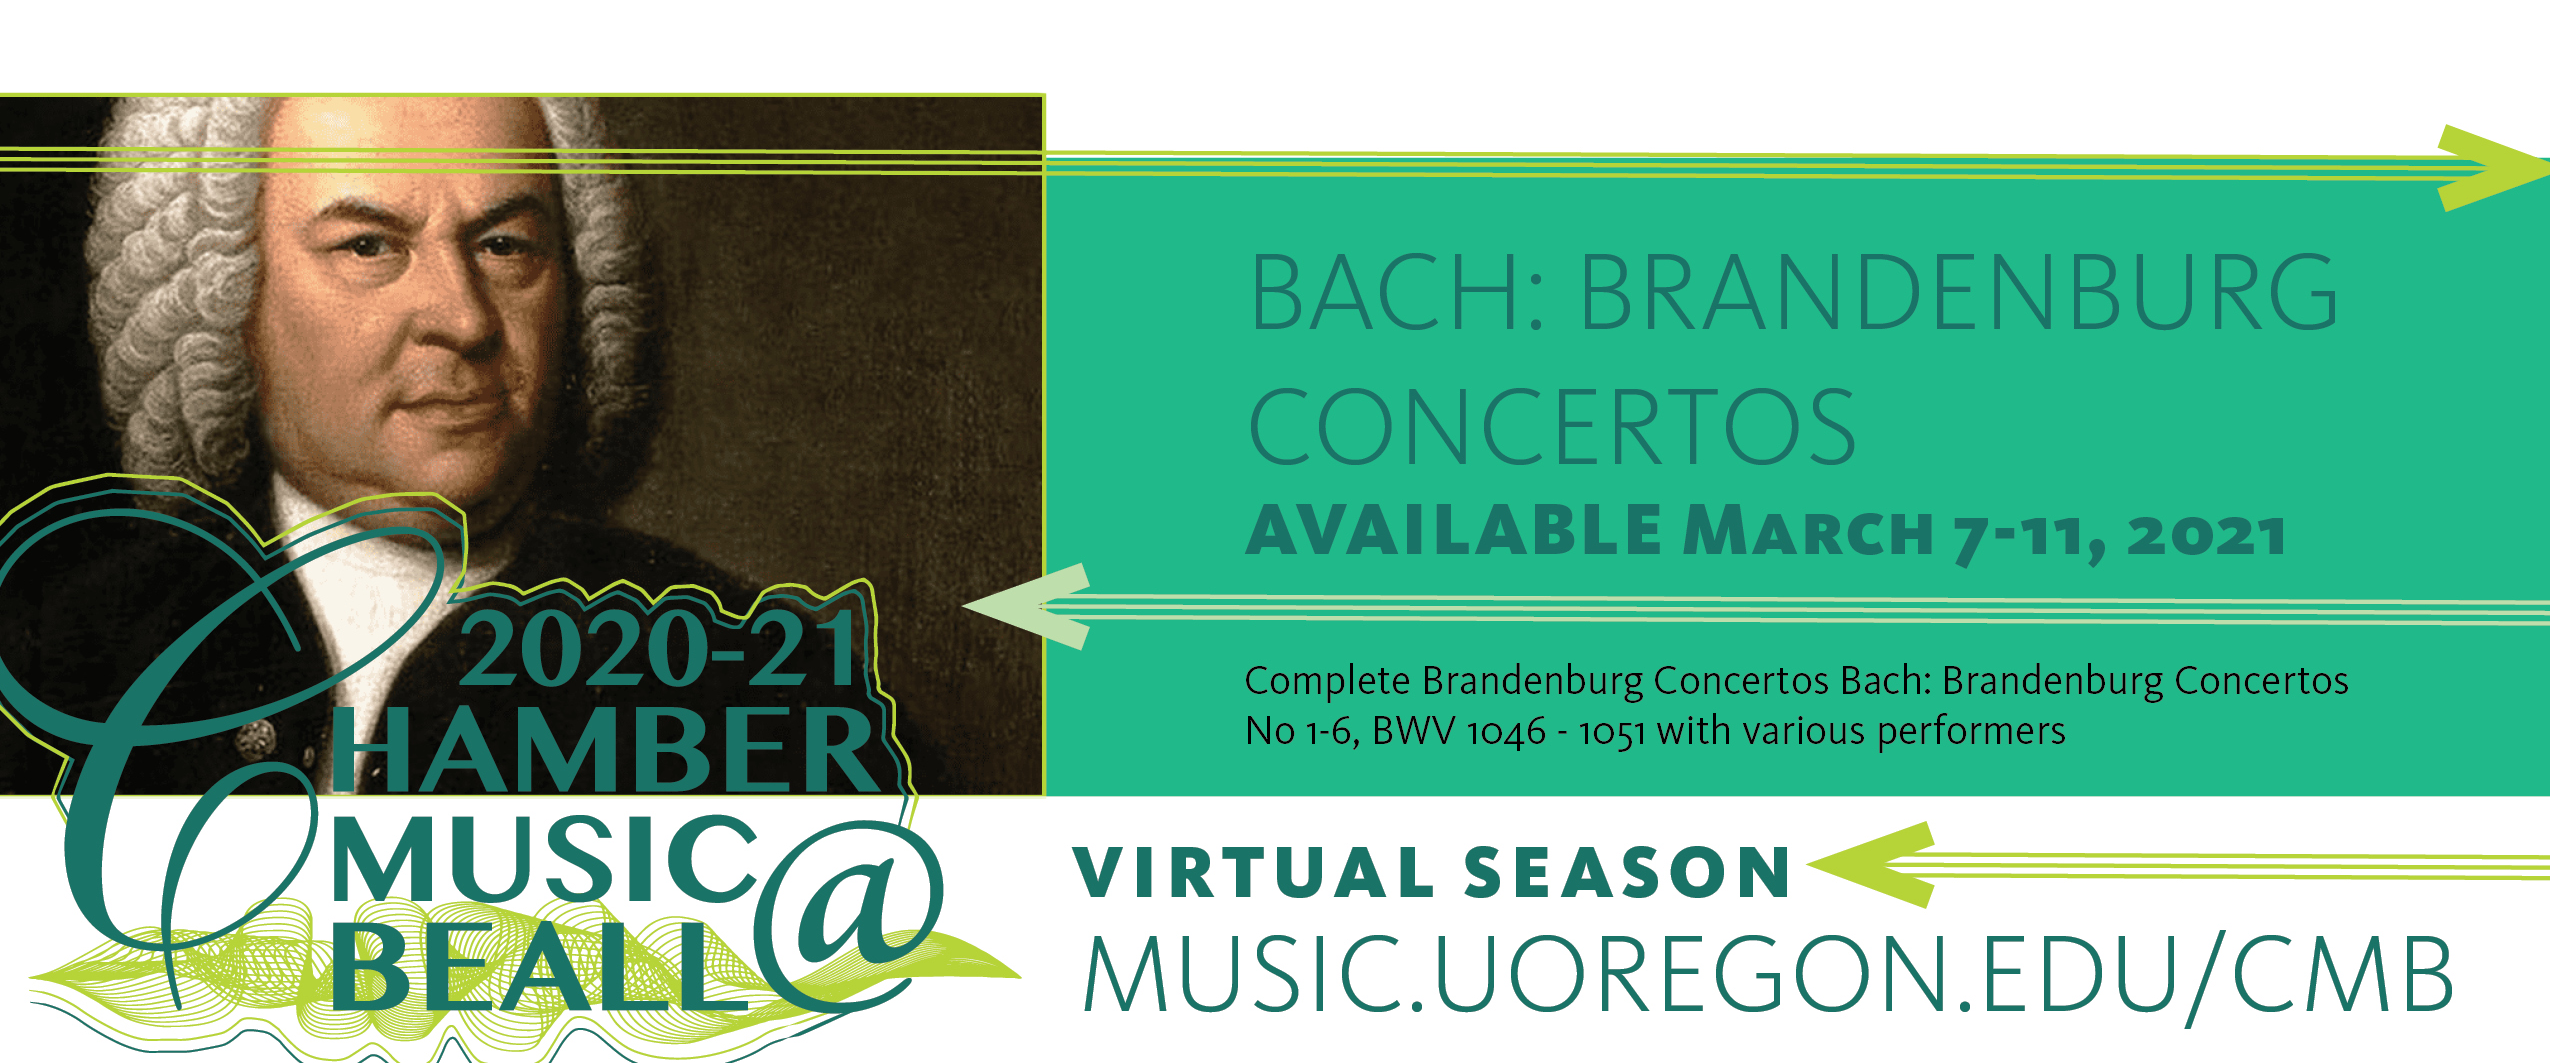 Bach: Brandenburg Concertos AVAILABLE March 7-11, 2021  Complete Brandenburg Concertos Bach: Brandenburg Concertos No 1-6, BWV 1046 - 1051 with various performers